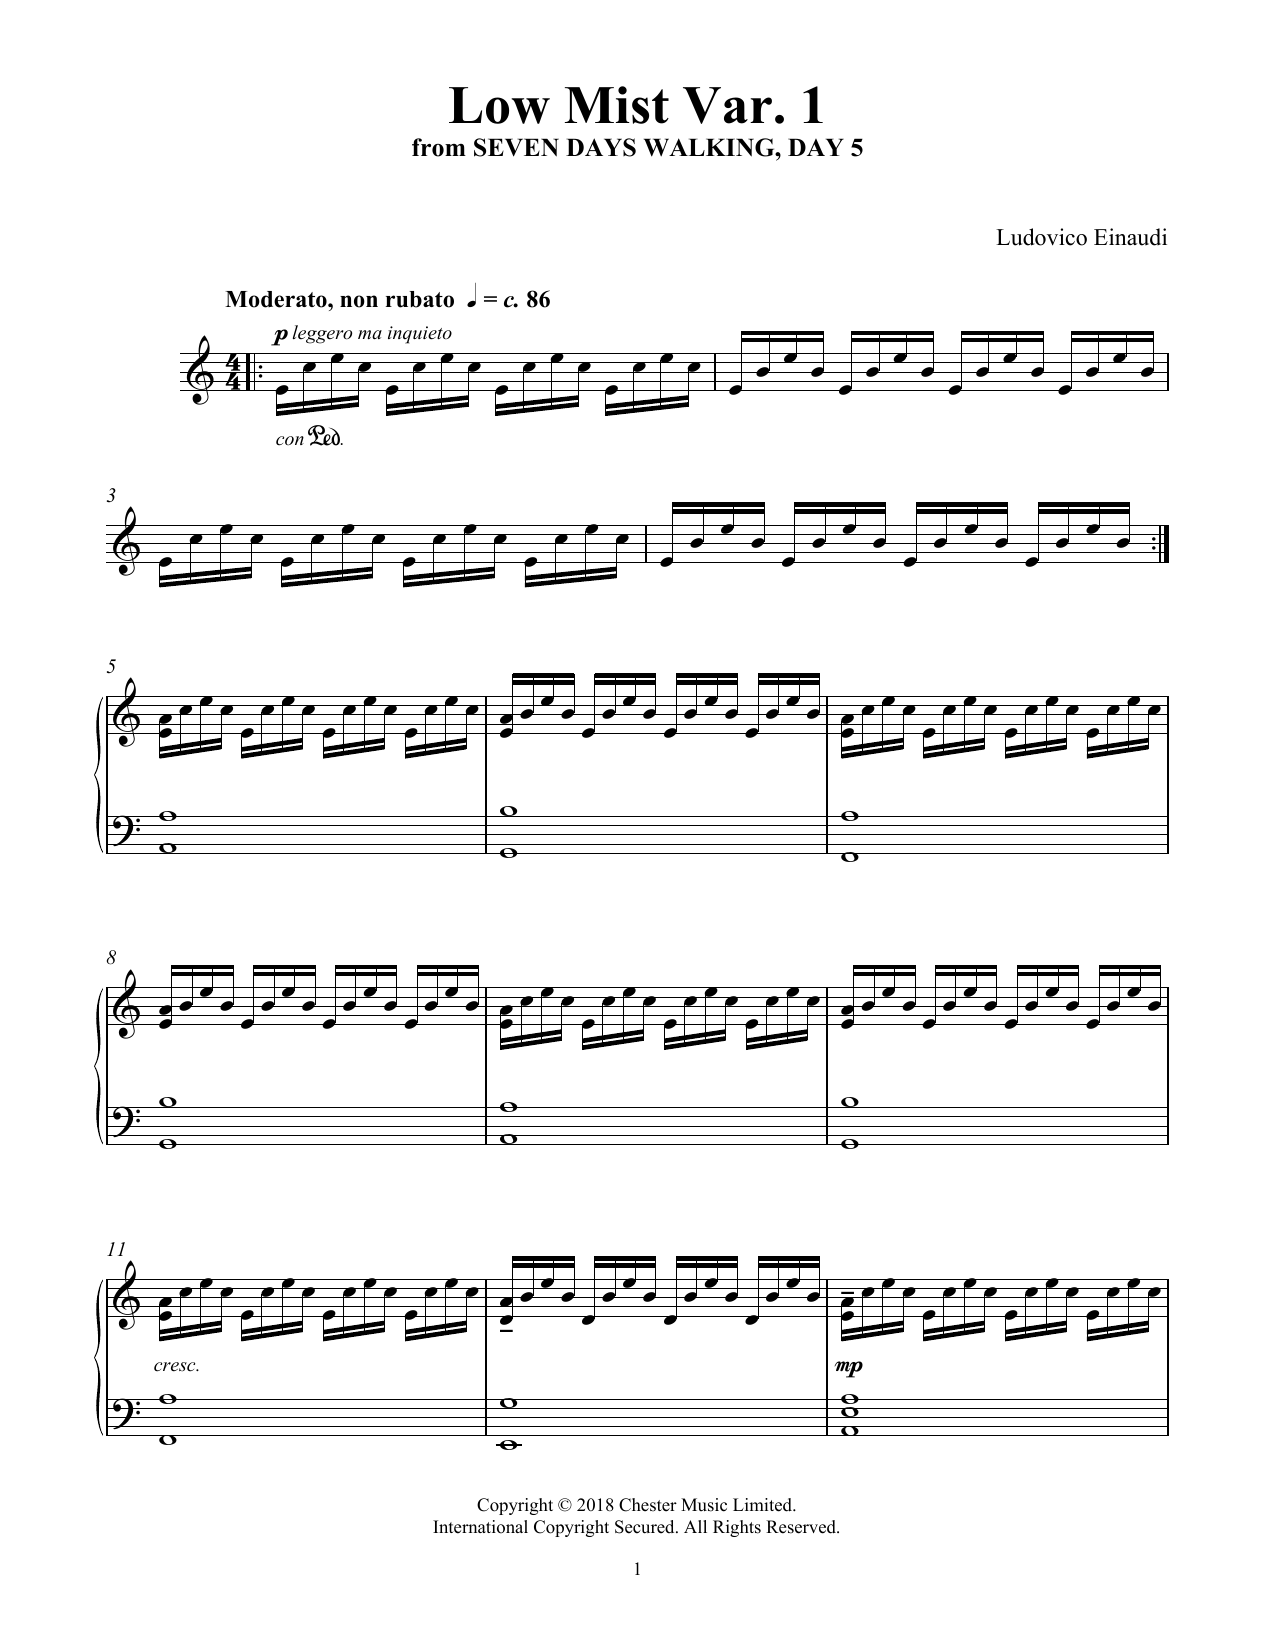 Ludovico Einaudi Low Mist Var. 1 (from Seven Days Walking: Day 5) sheet music notes and chords. Download Printable PDF.